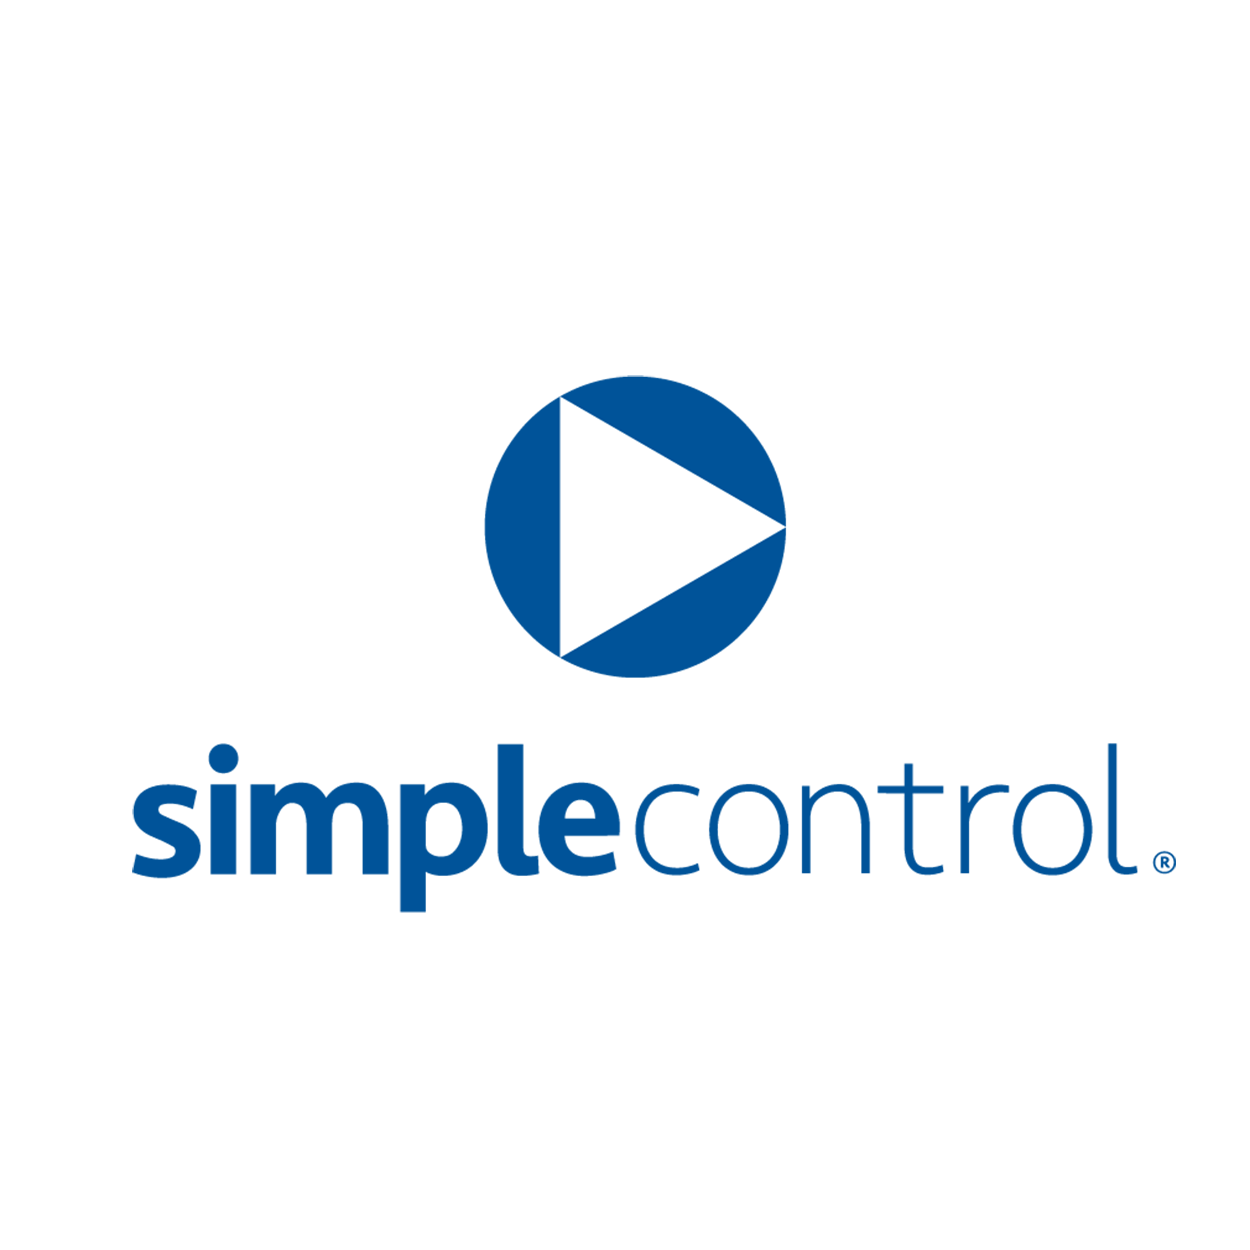 simplecontrol.png